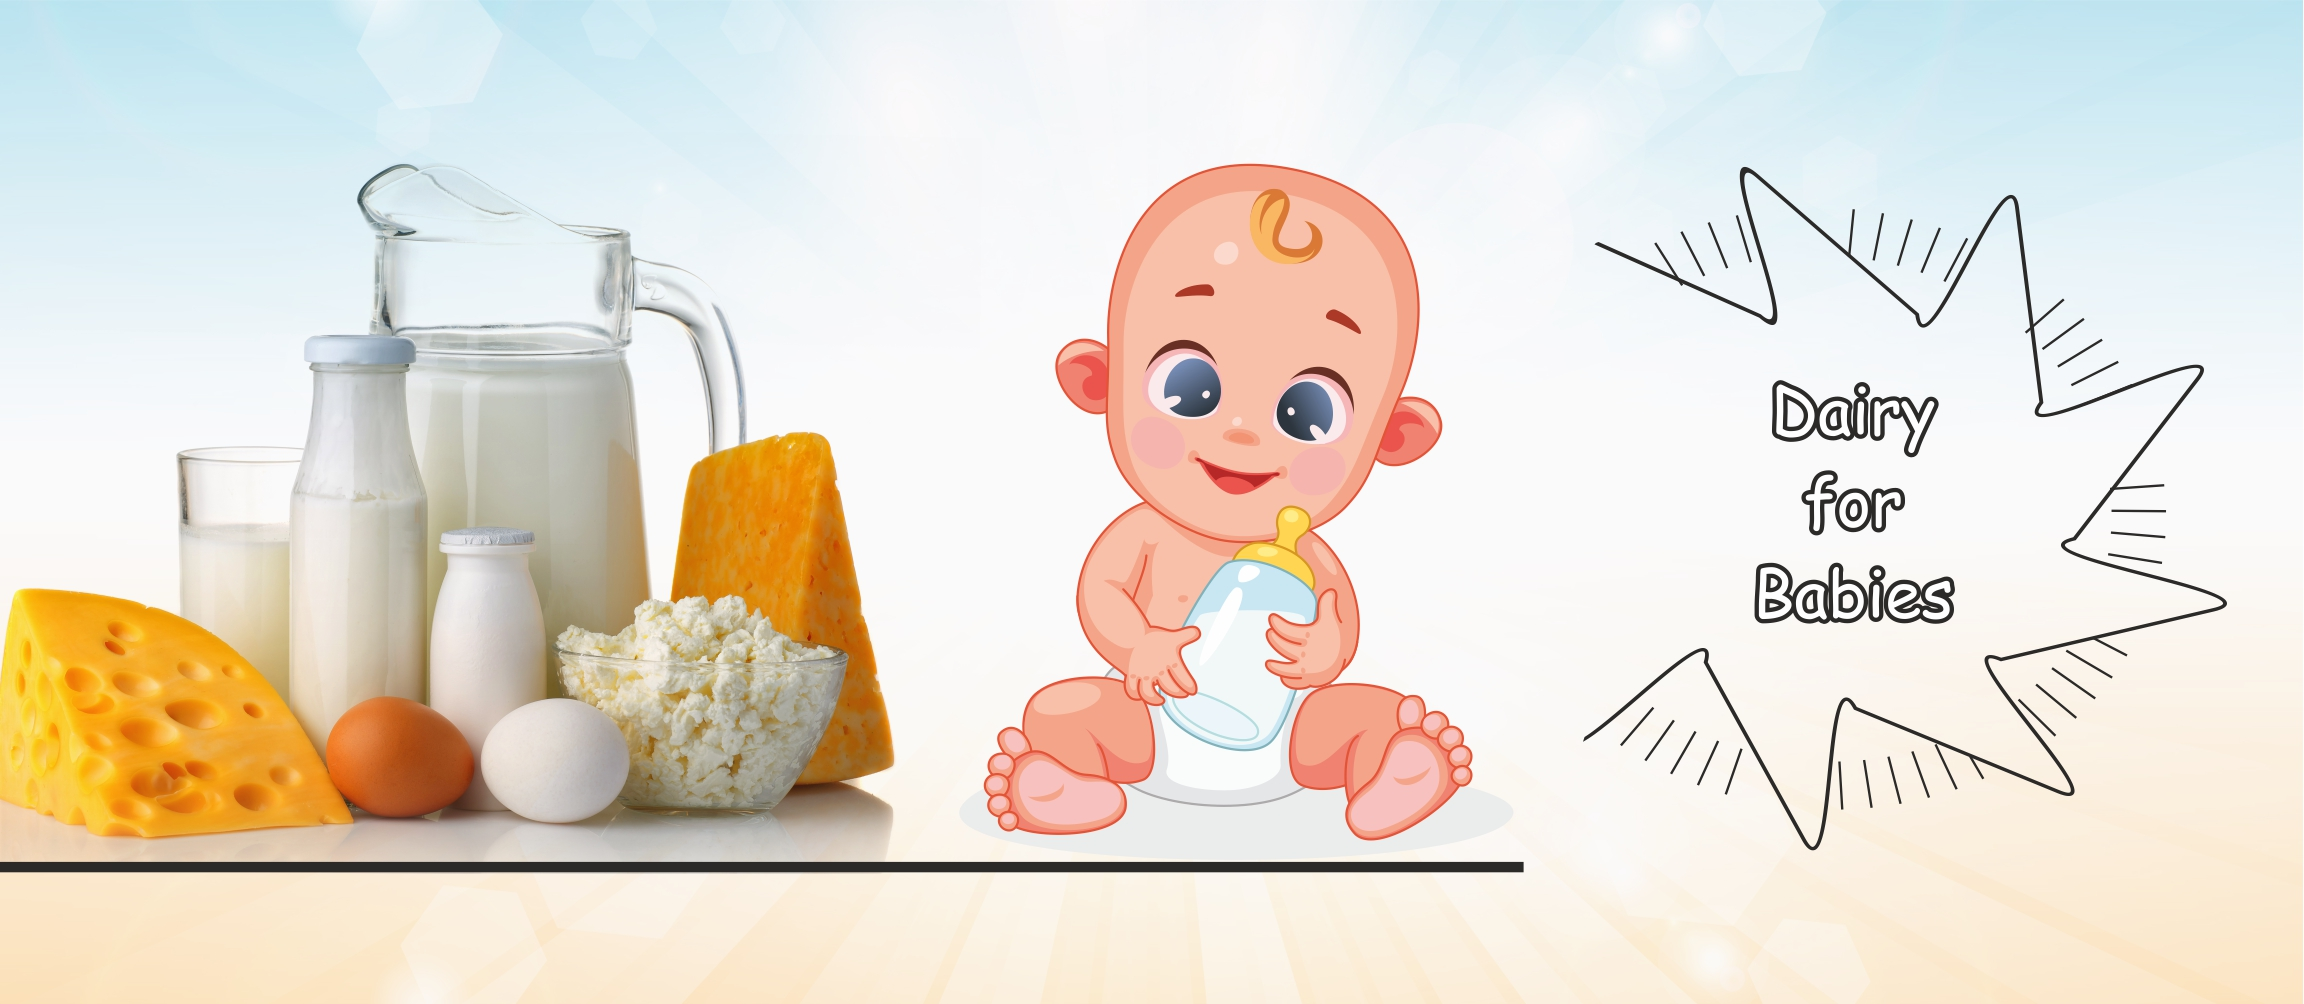 You are currently viewing Dairy for Babies